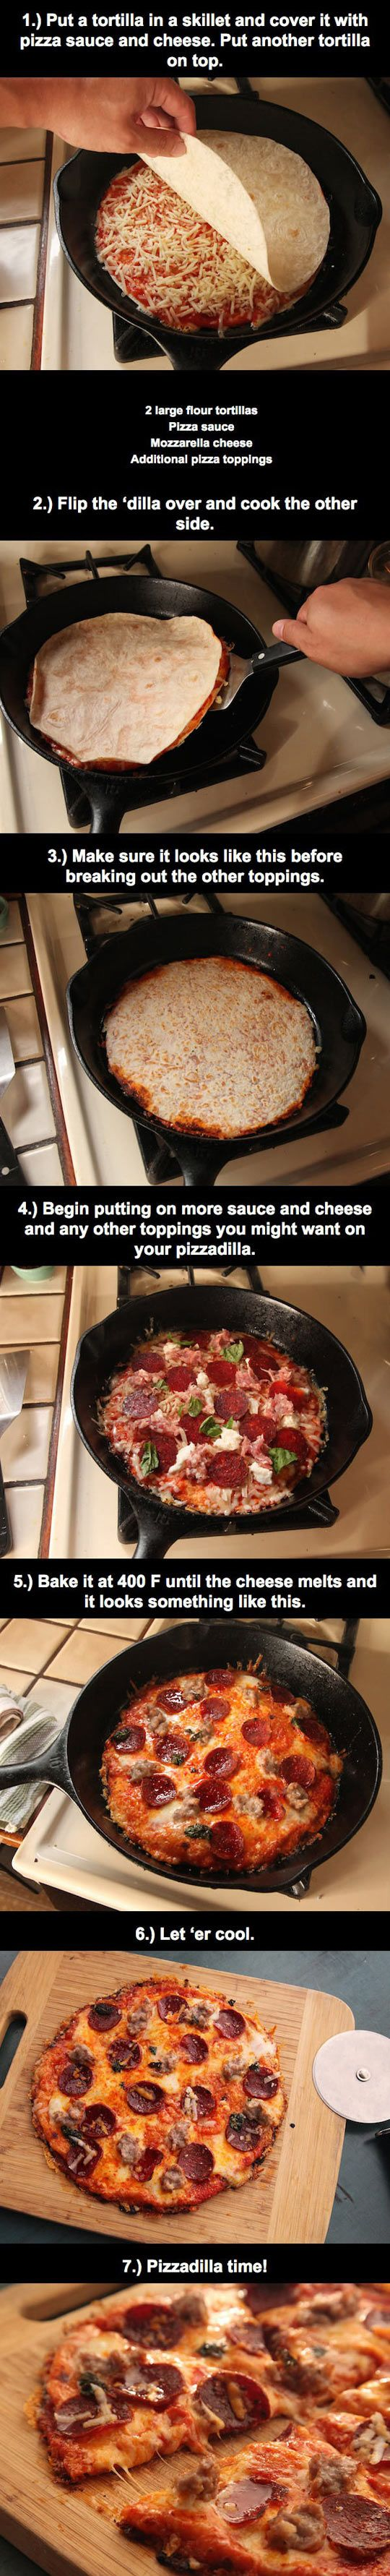 Low carb pizza. Use low carb tortilla.